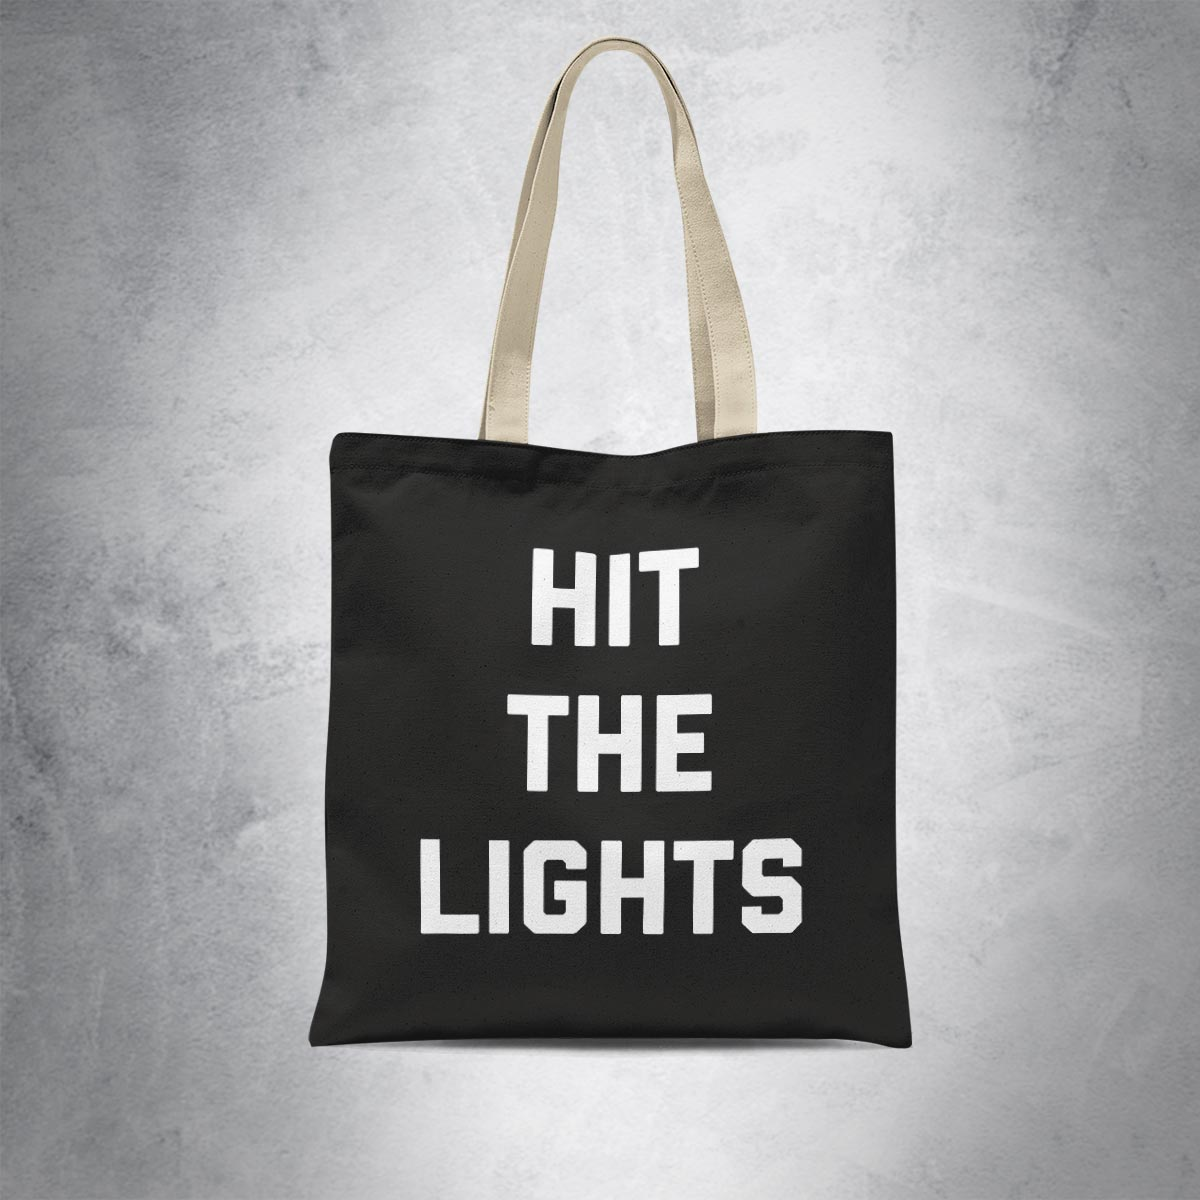 METALLICA - Hit the lights